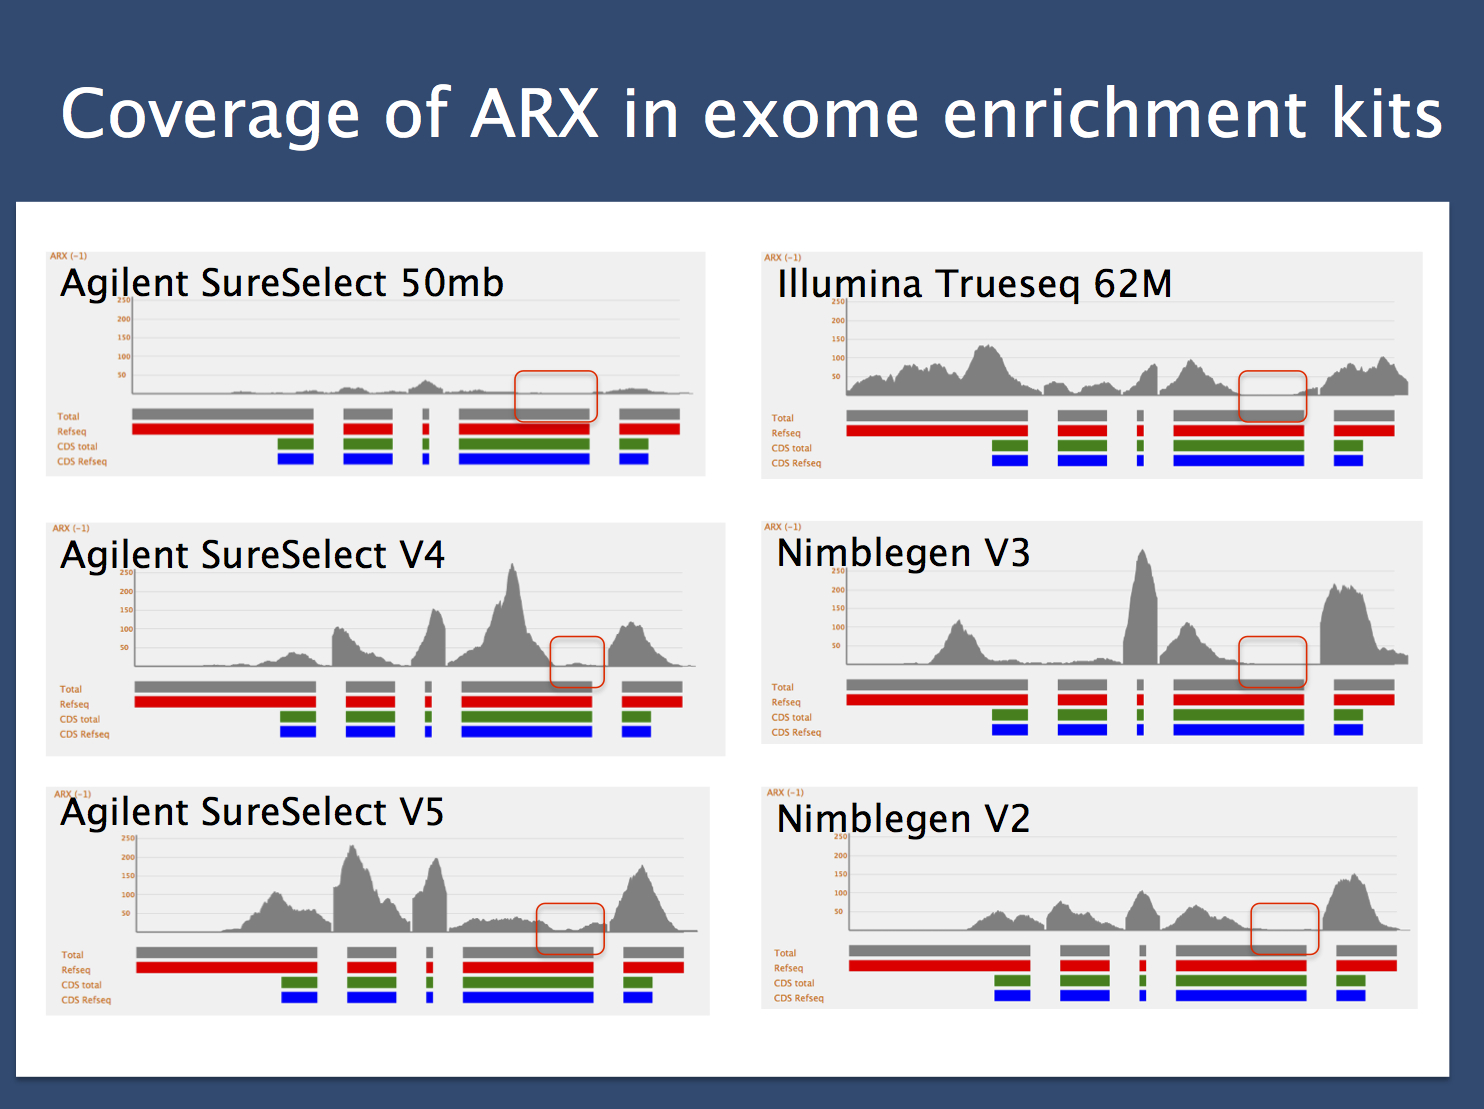 "Coverage of ARX in common exome enrichment kits. The red, green and blue bars indicate the exons of the ARX gene, which is located on the X-chromosome in ""-"" direction, i.e. the first exon is on the right. The first half of the second exon harbors the sites for the pathogenic polyalanine expansions, which lead to Infantile Spasms. These regions are not covered in most exome enrichment kits (red box). The coverage plots were generated by Holger Thiele, Cologne Center for Genomics using the Varbank tool."